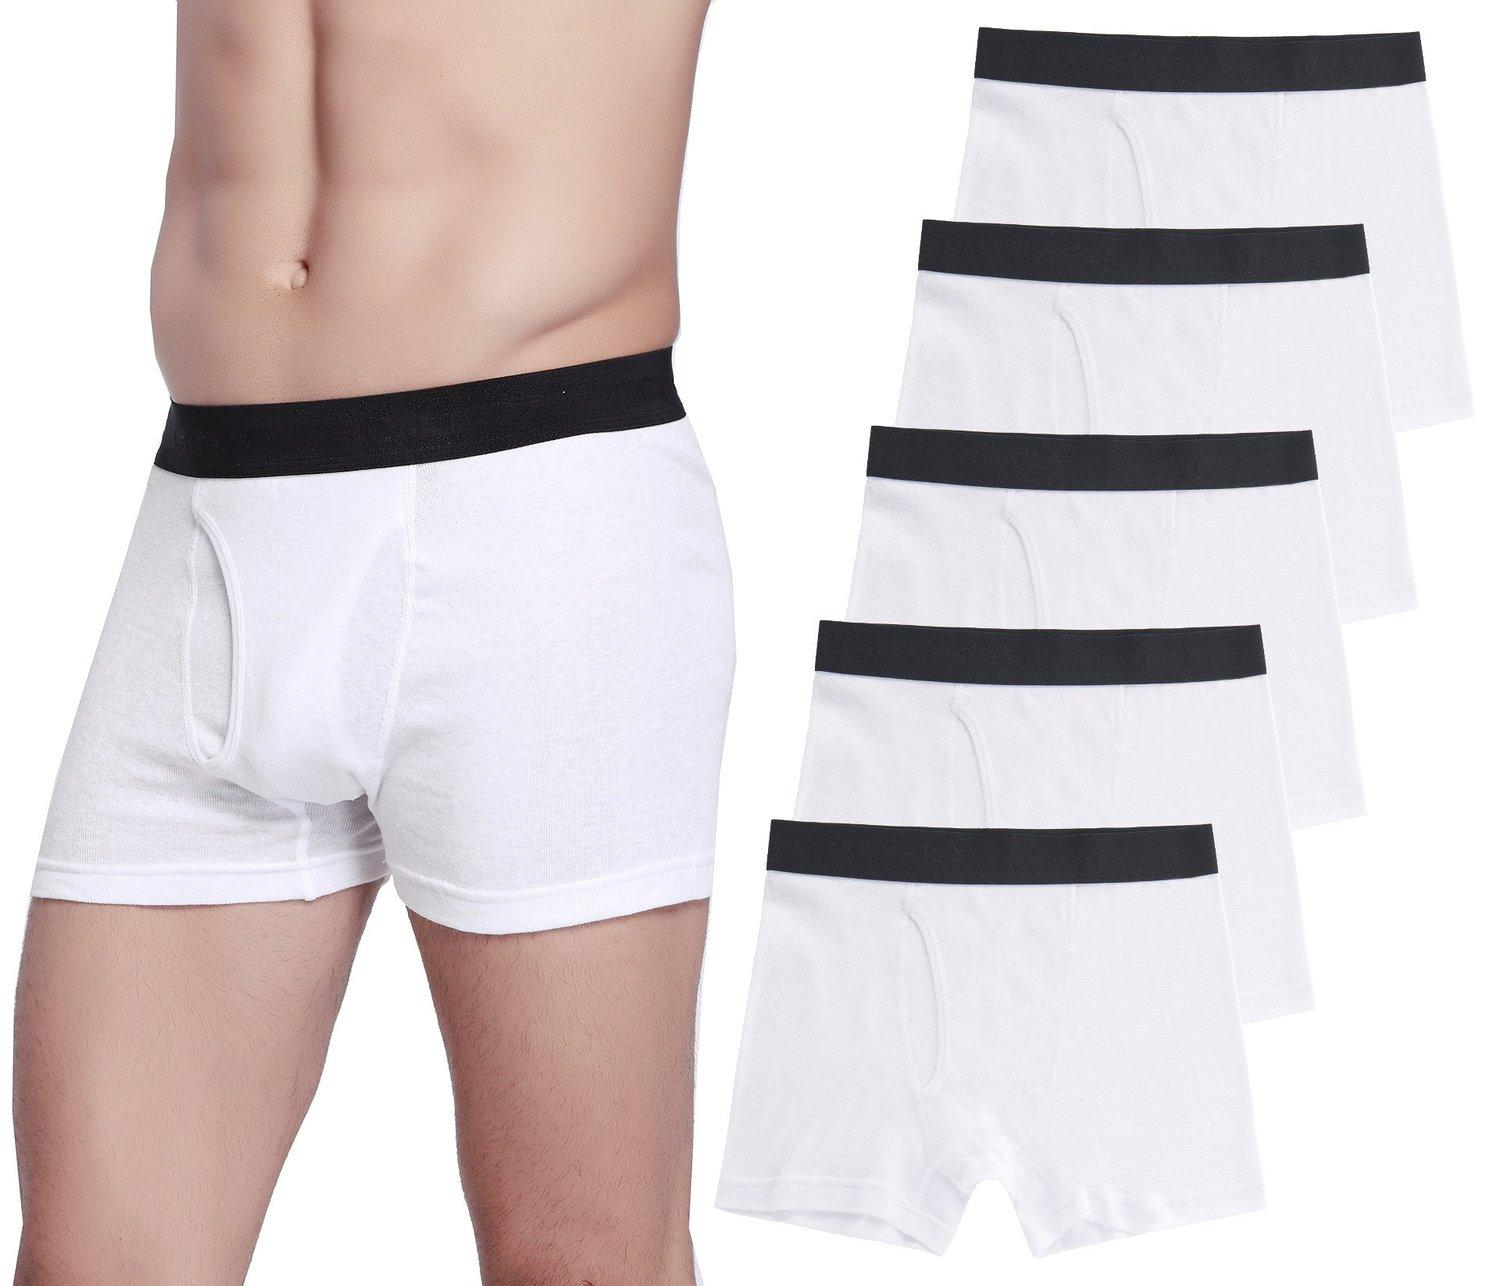 Buy 1 Get 1 Free CYZ Men's 5-Pack Comfortable Cotton Boxer Brief